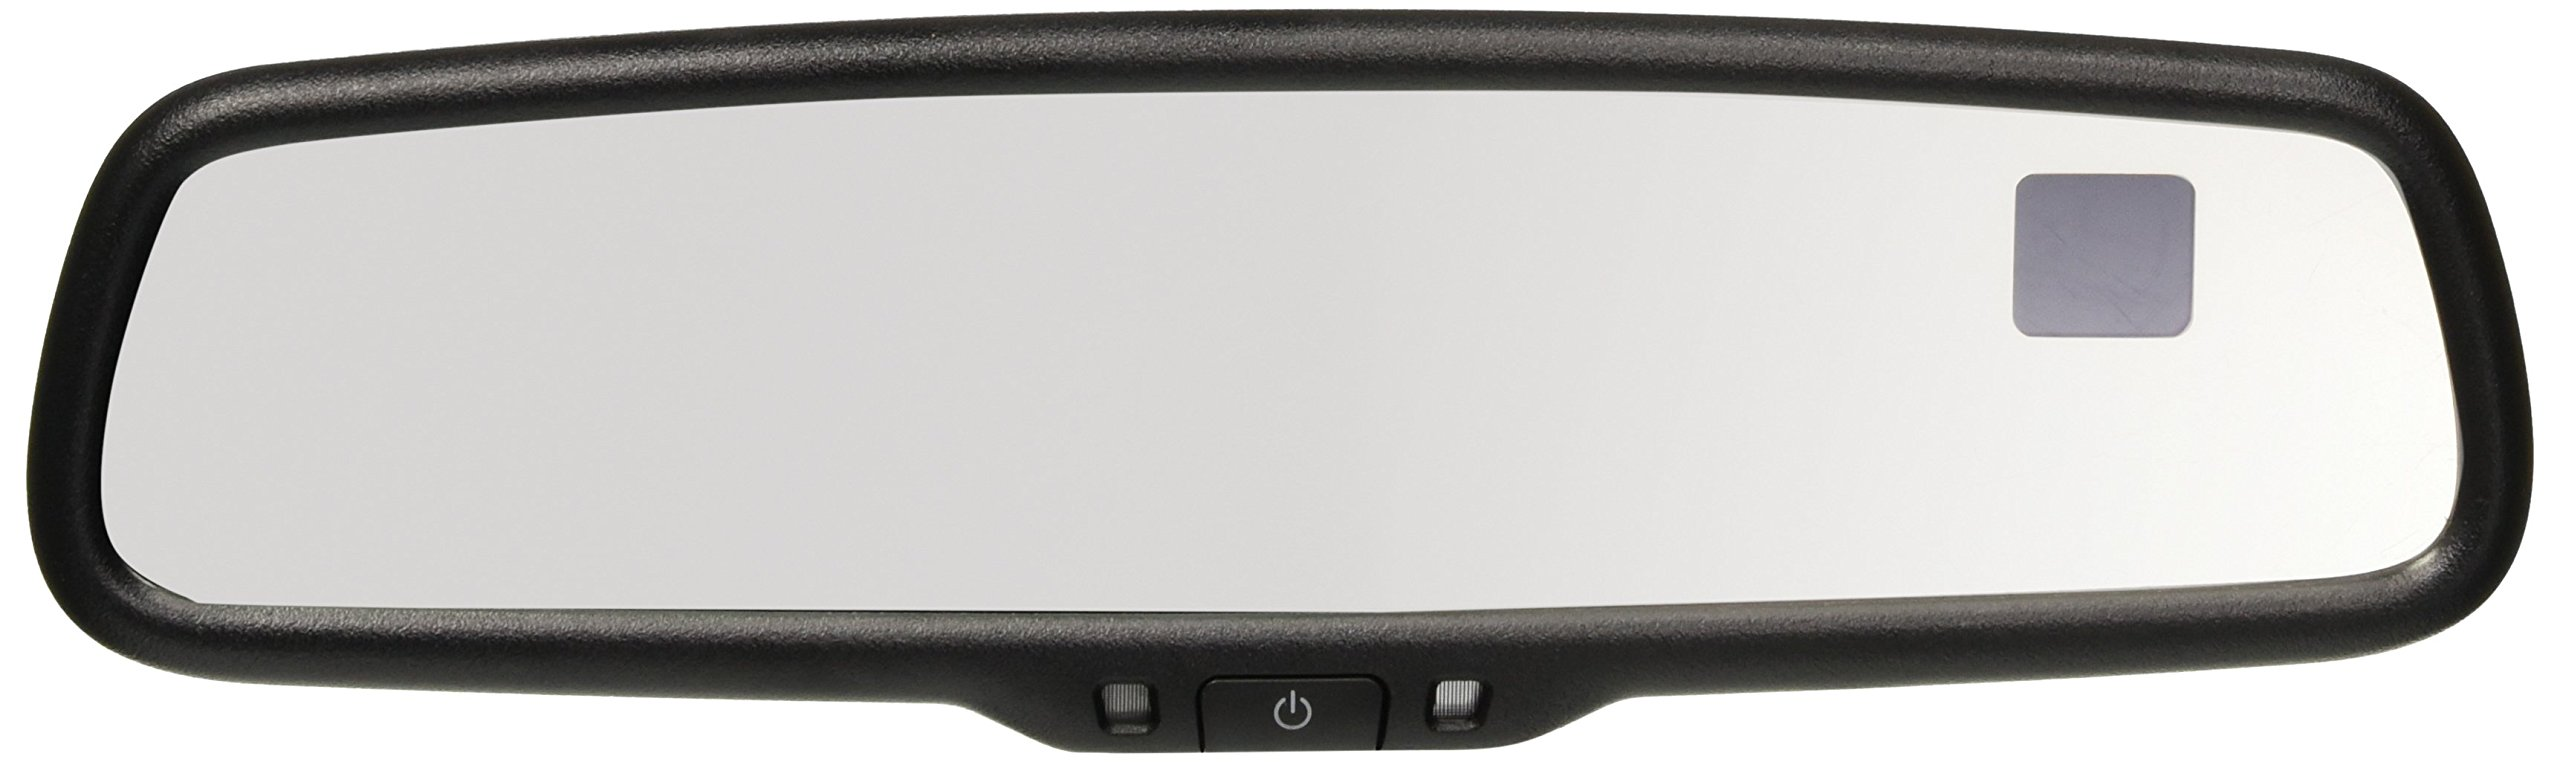 Gentex Genk20a Auto Dimming Mirror W Compass Temperature 177 Wiring Diagram Automotive